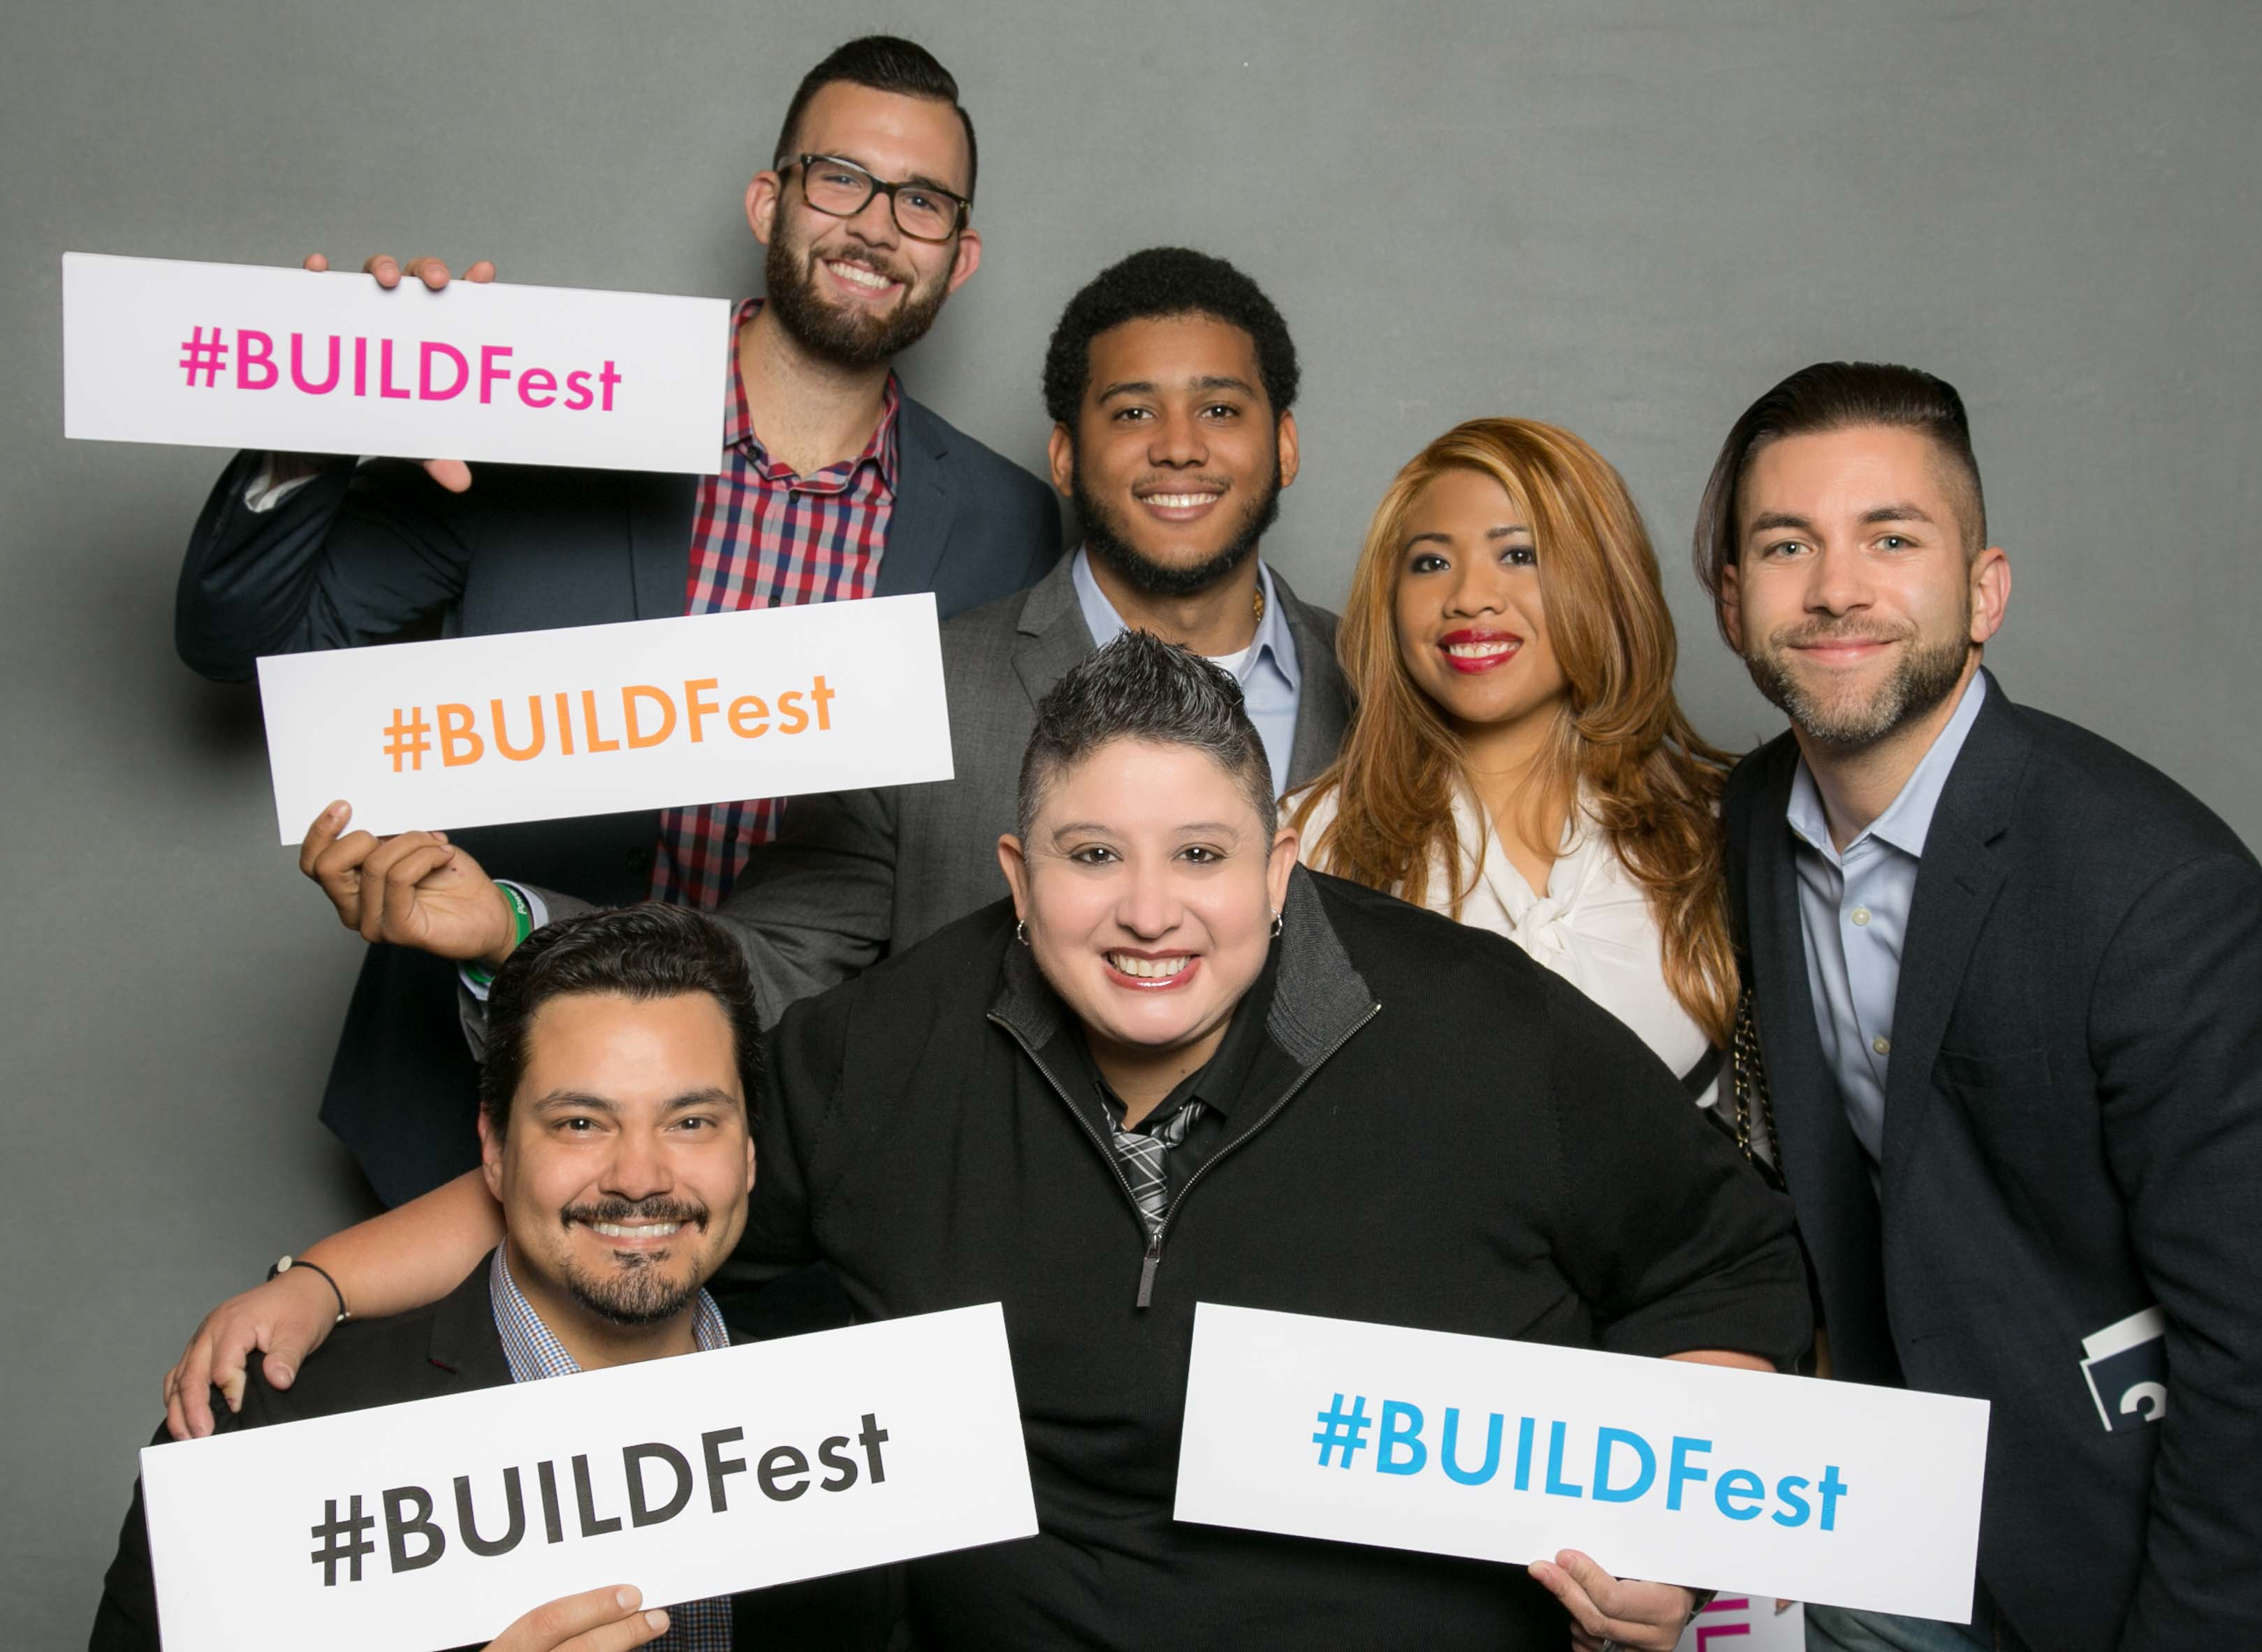 Having Fun With Live Photos at Build Fest Boston